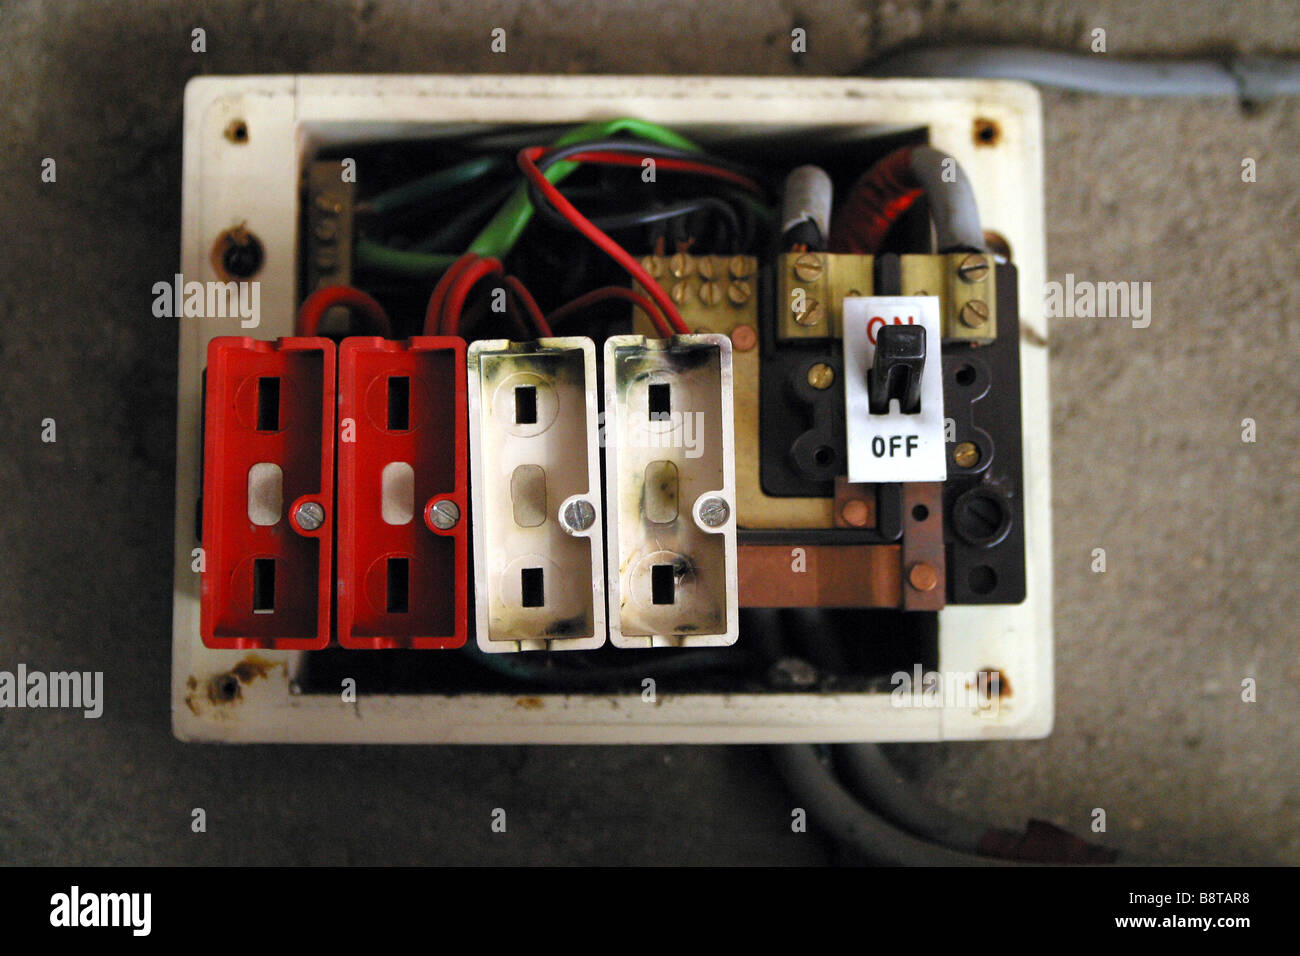 replacing fuse box wiring library the last of us box fuses for fuse box house simple wiring diagram schema old screw in fuse boxes replacing old